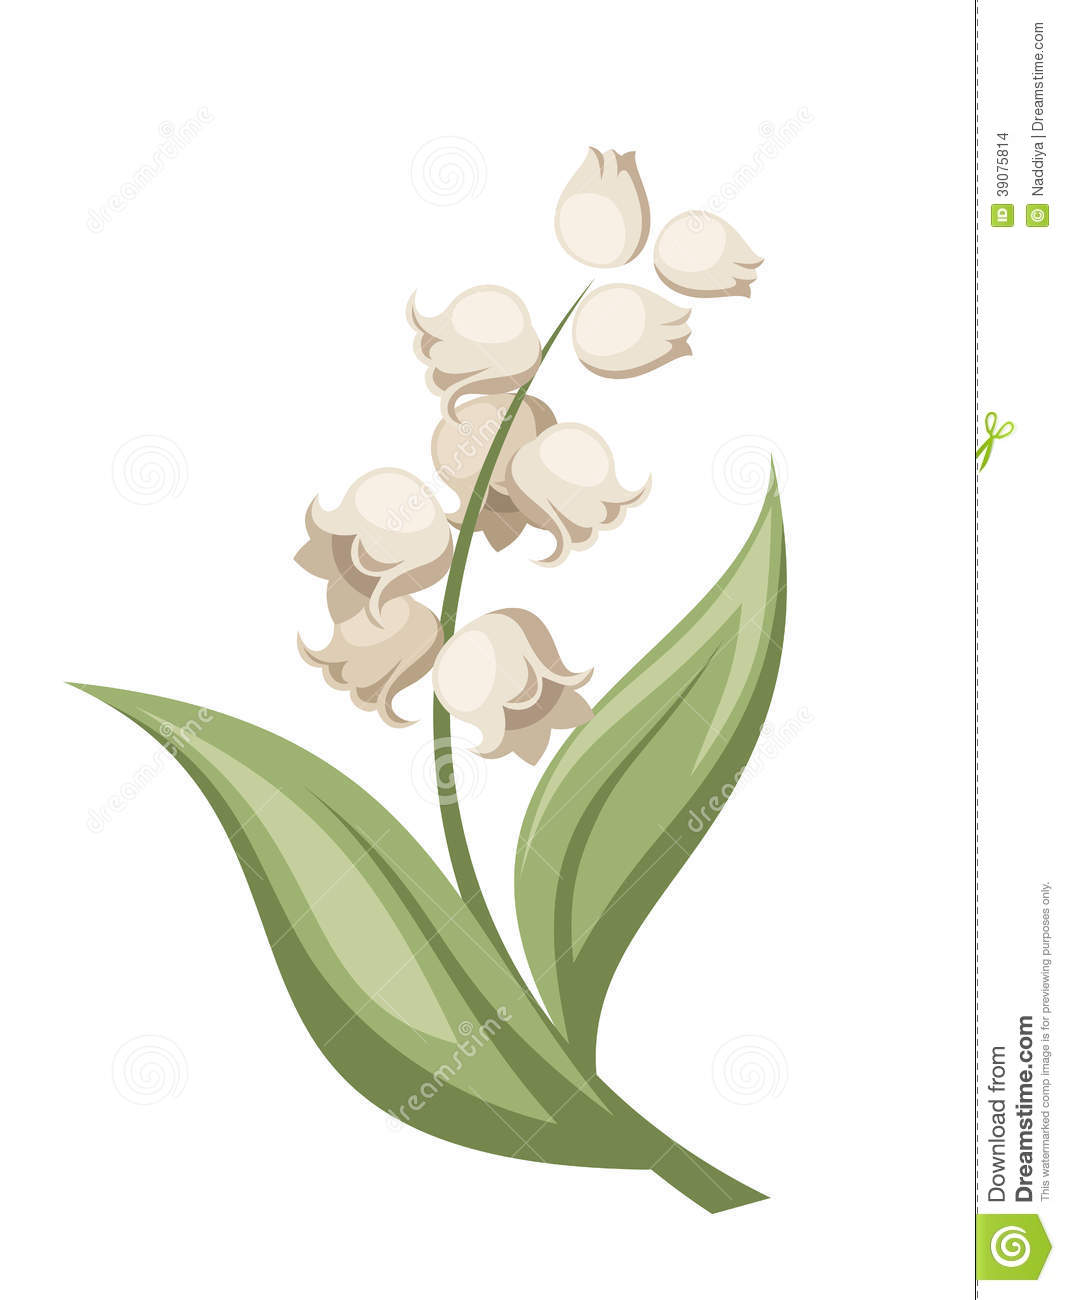 Lily of the valley flower vector illustration stock vector download lily of the valley flower vector illustration stock vector illustration of flora izmirmasajfo